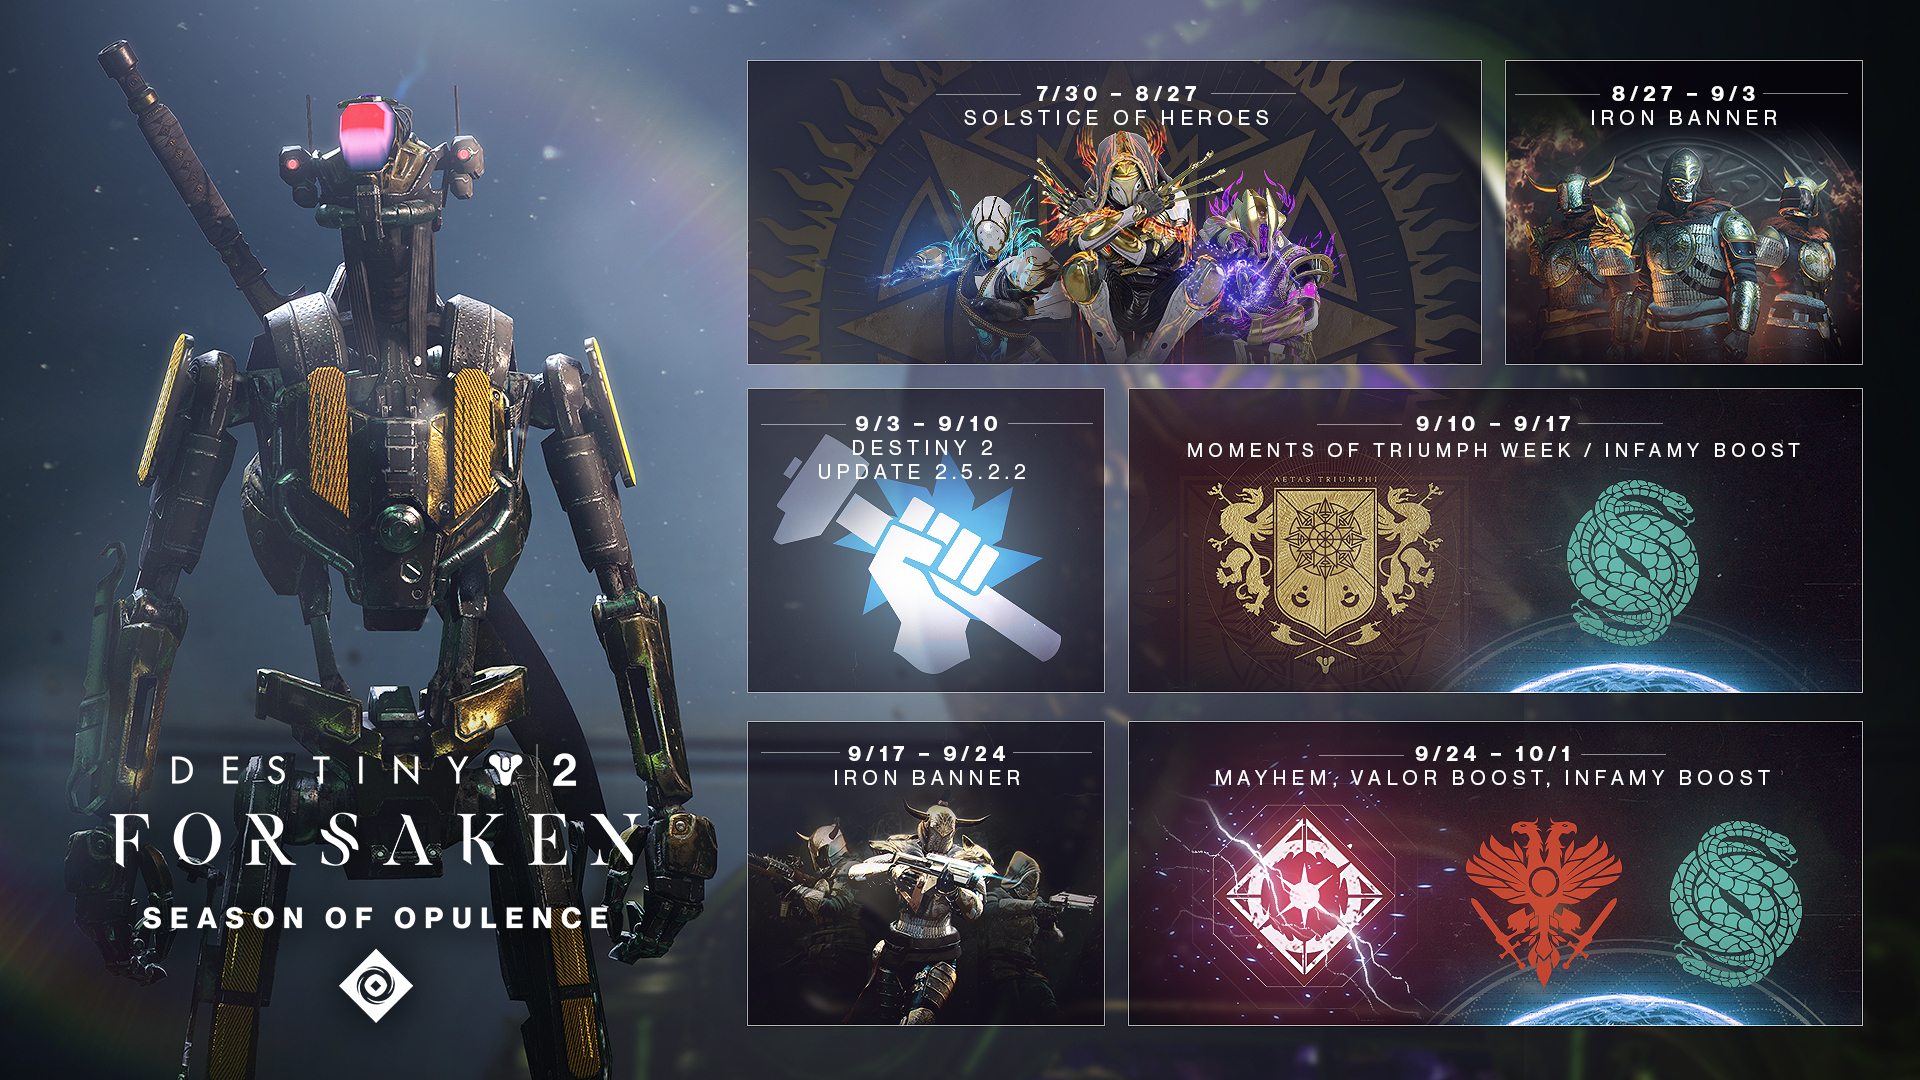 Destiny 2: Season of Opulence